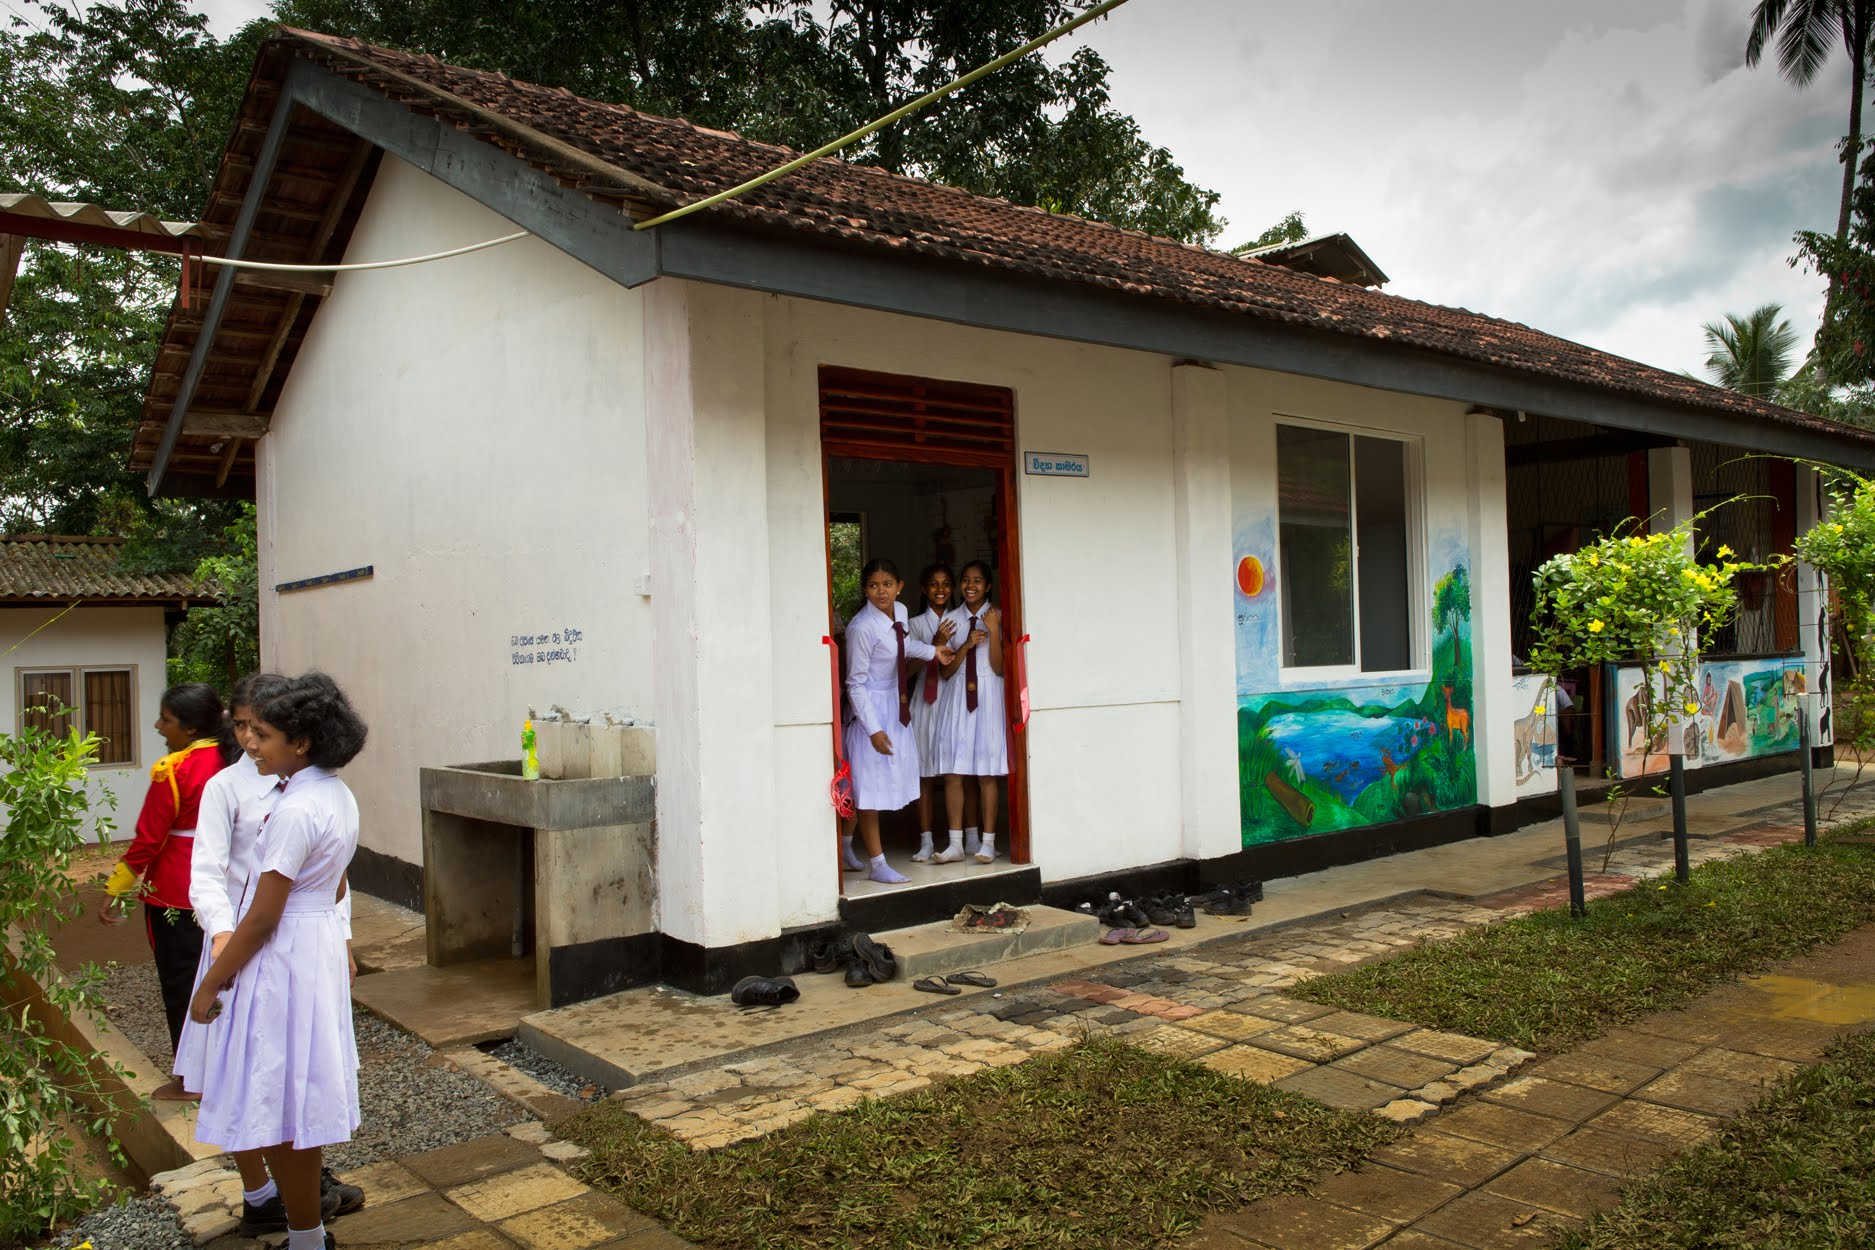 The new science lab at Palpita School cost $4,000 U.S. to renovate from the original open pavilion. Inside, it has tile floors, new walls, windows, ventilation, tables and cases of brand new scientific glass, textbooks and models.